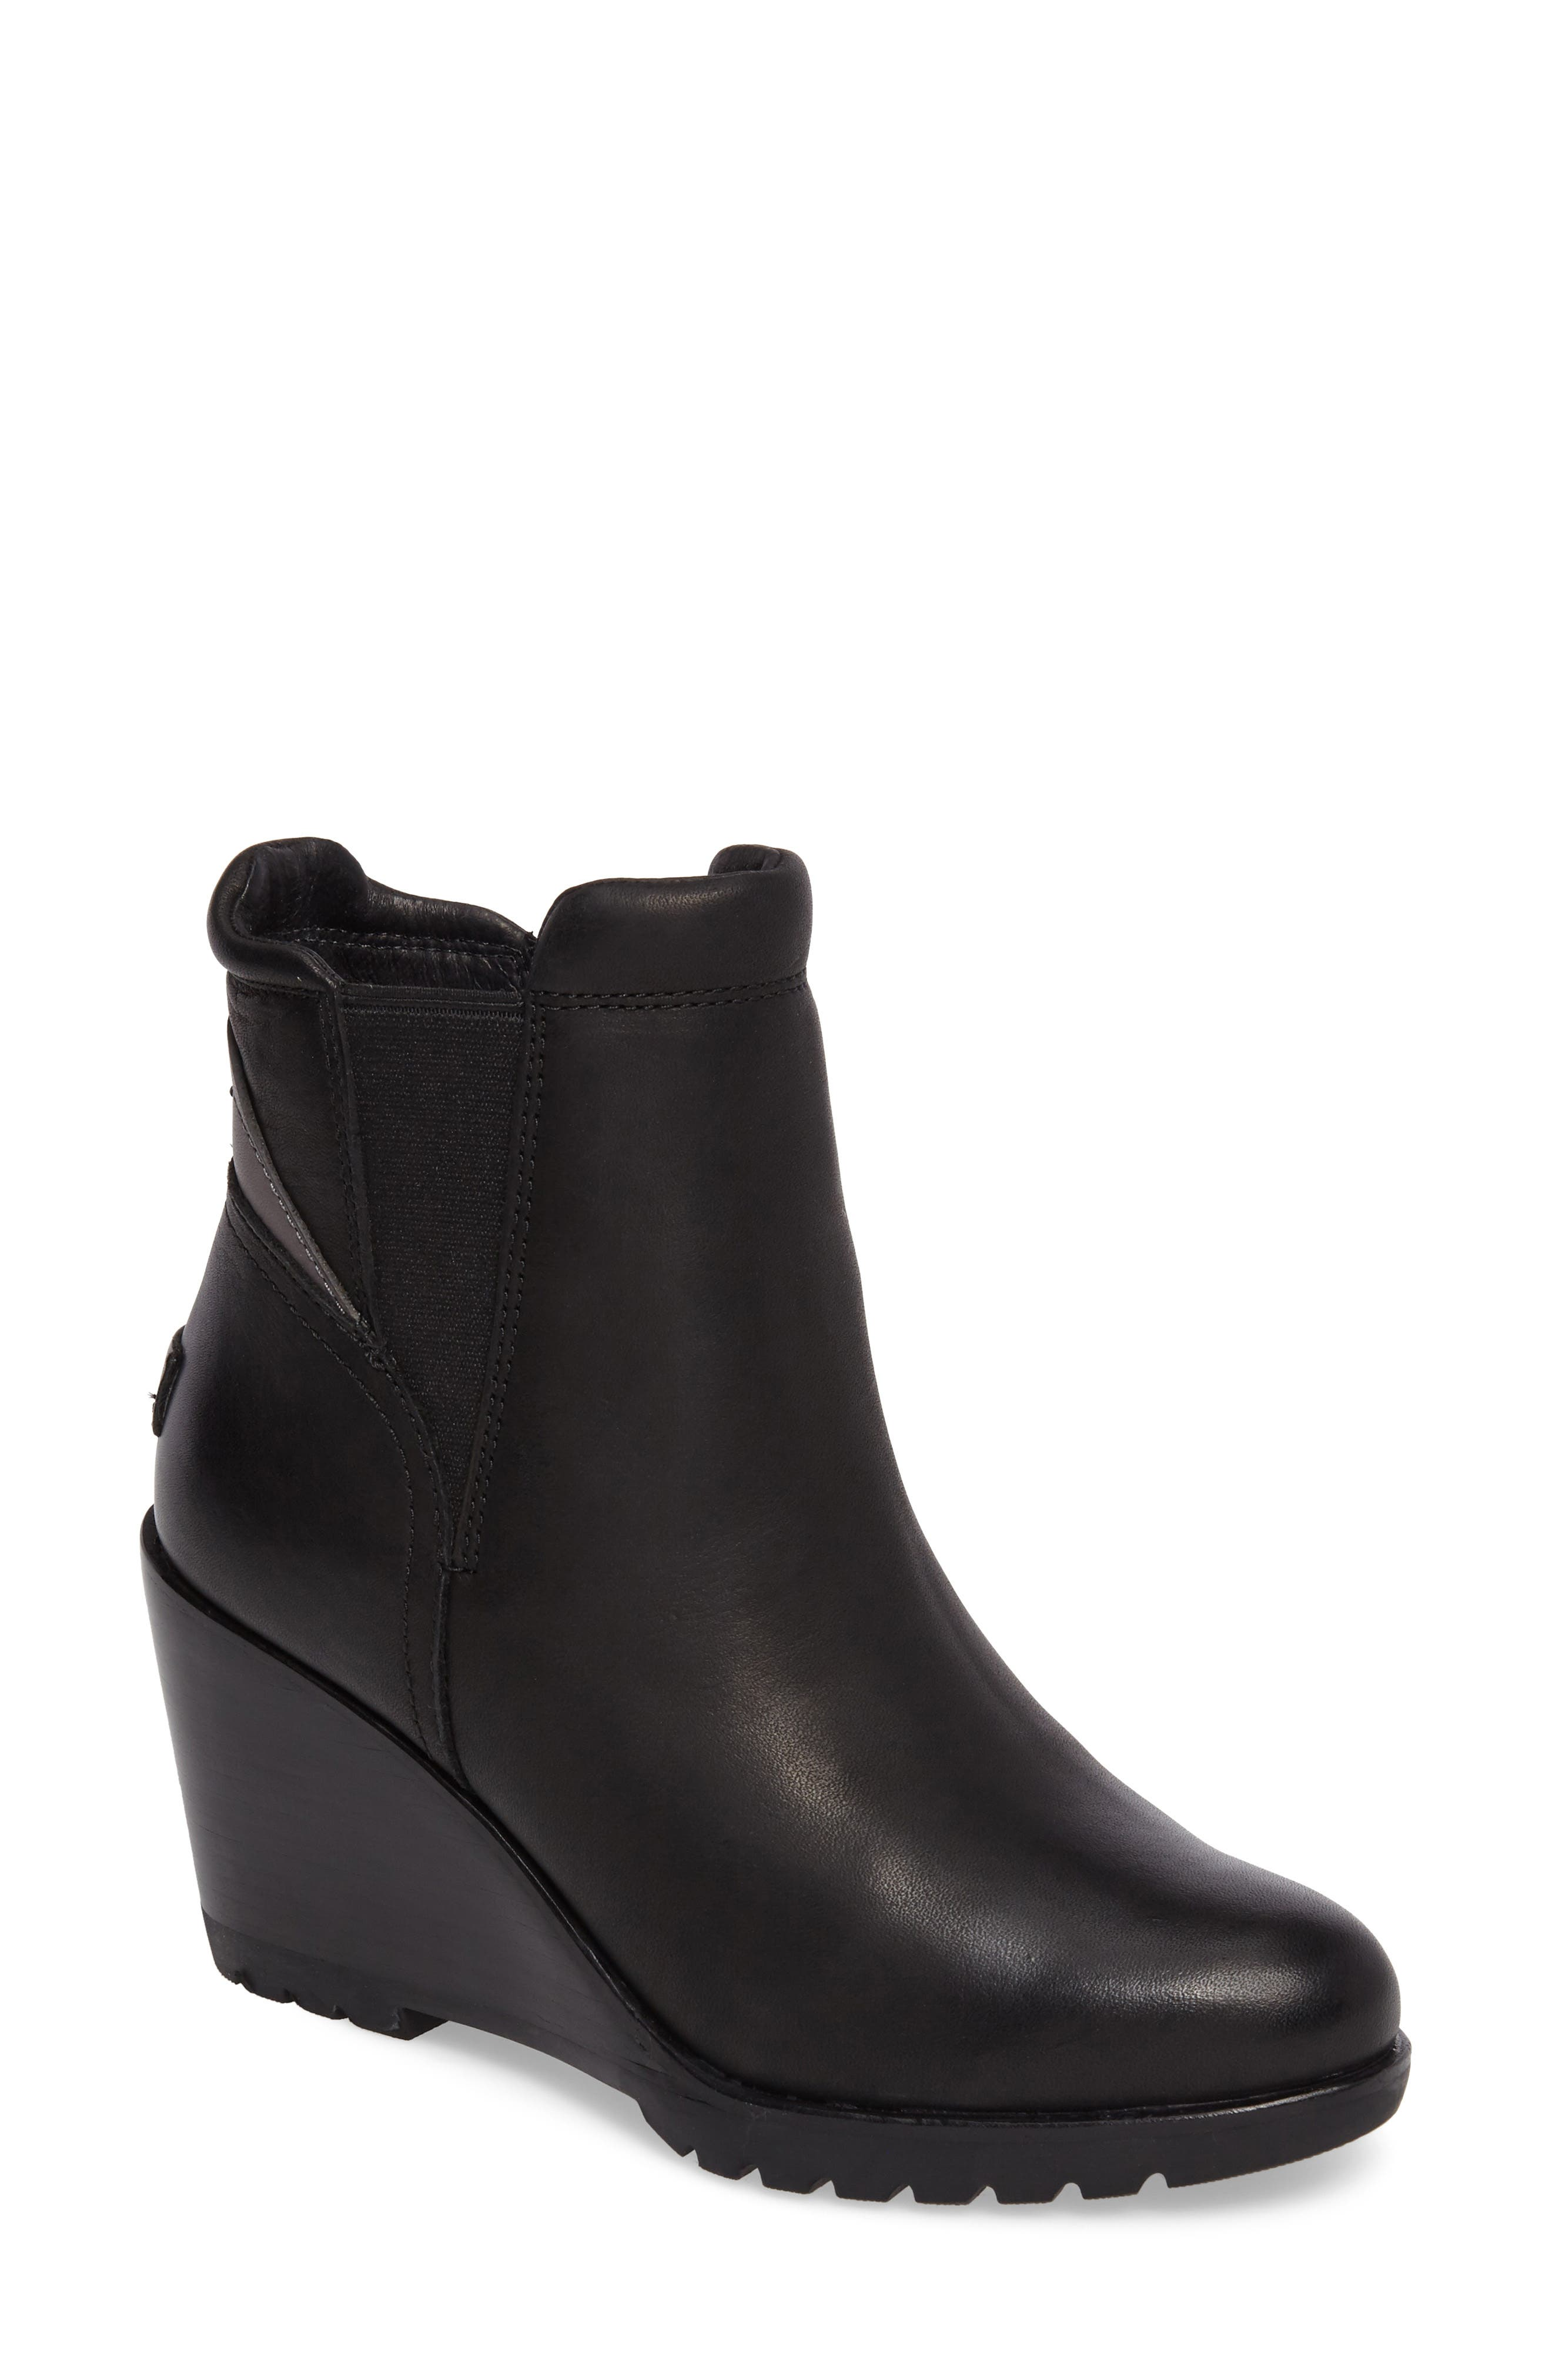 After Hours Chelsea Boot,                             Main thumbnail 2, color,